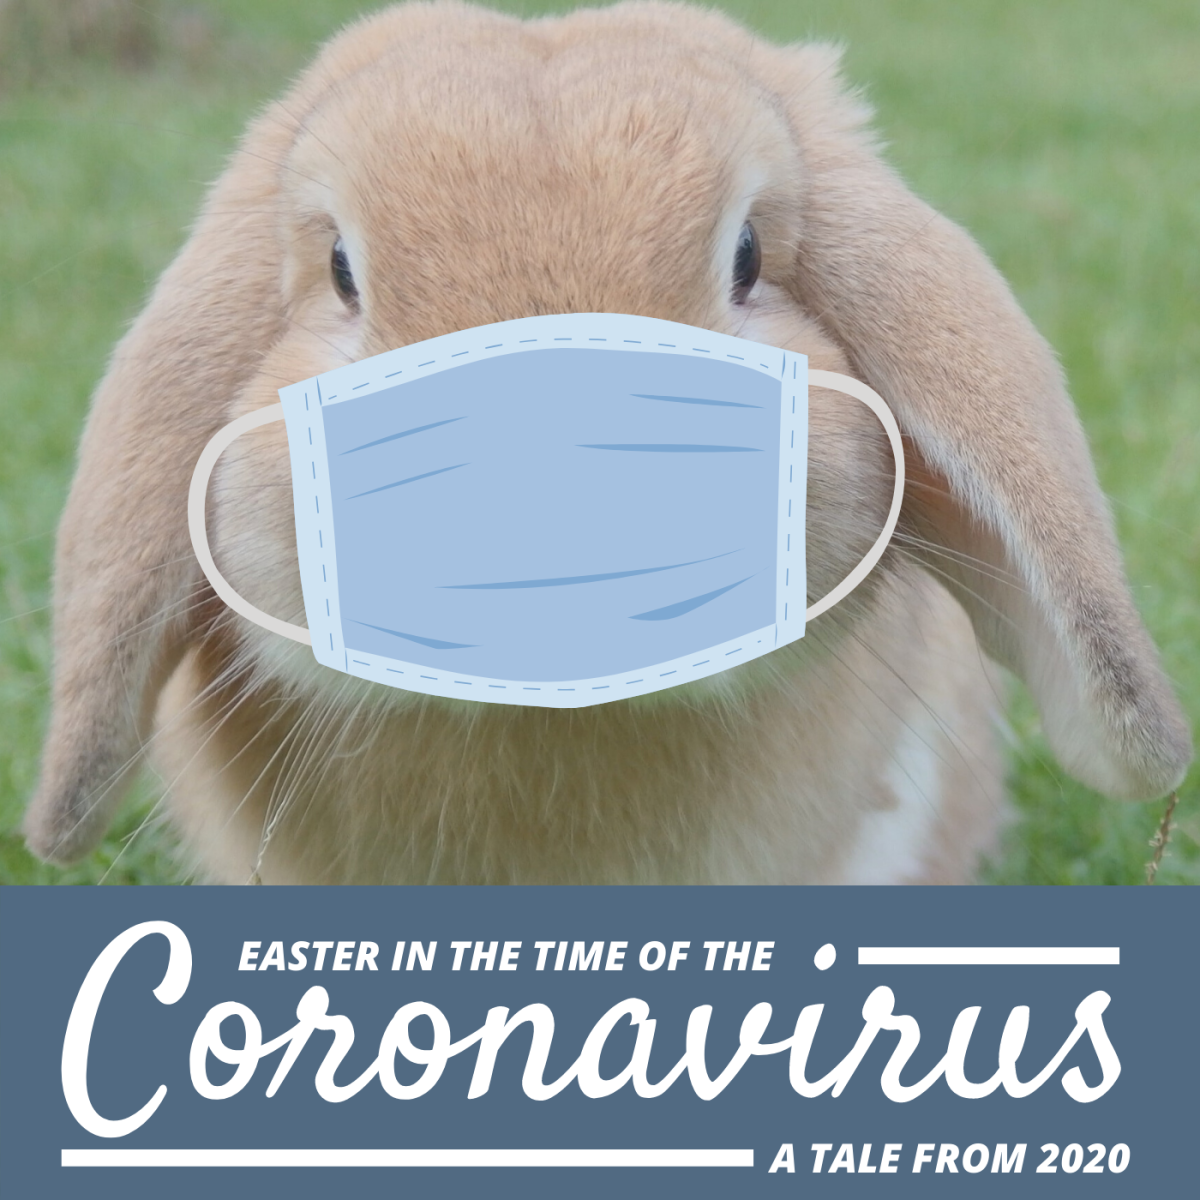 These are my musings about Easter 2020, a holiday that occurred during the height of  the COVID-19 crisis in the US.